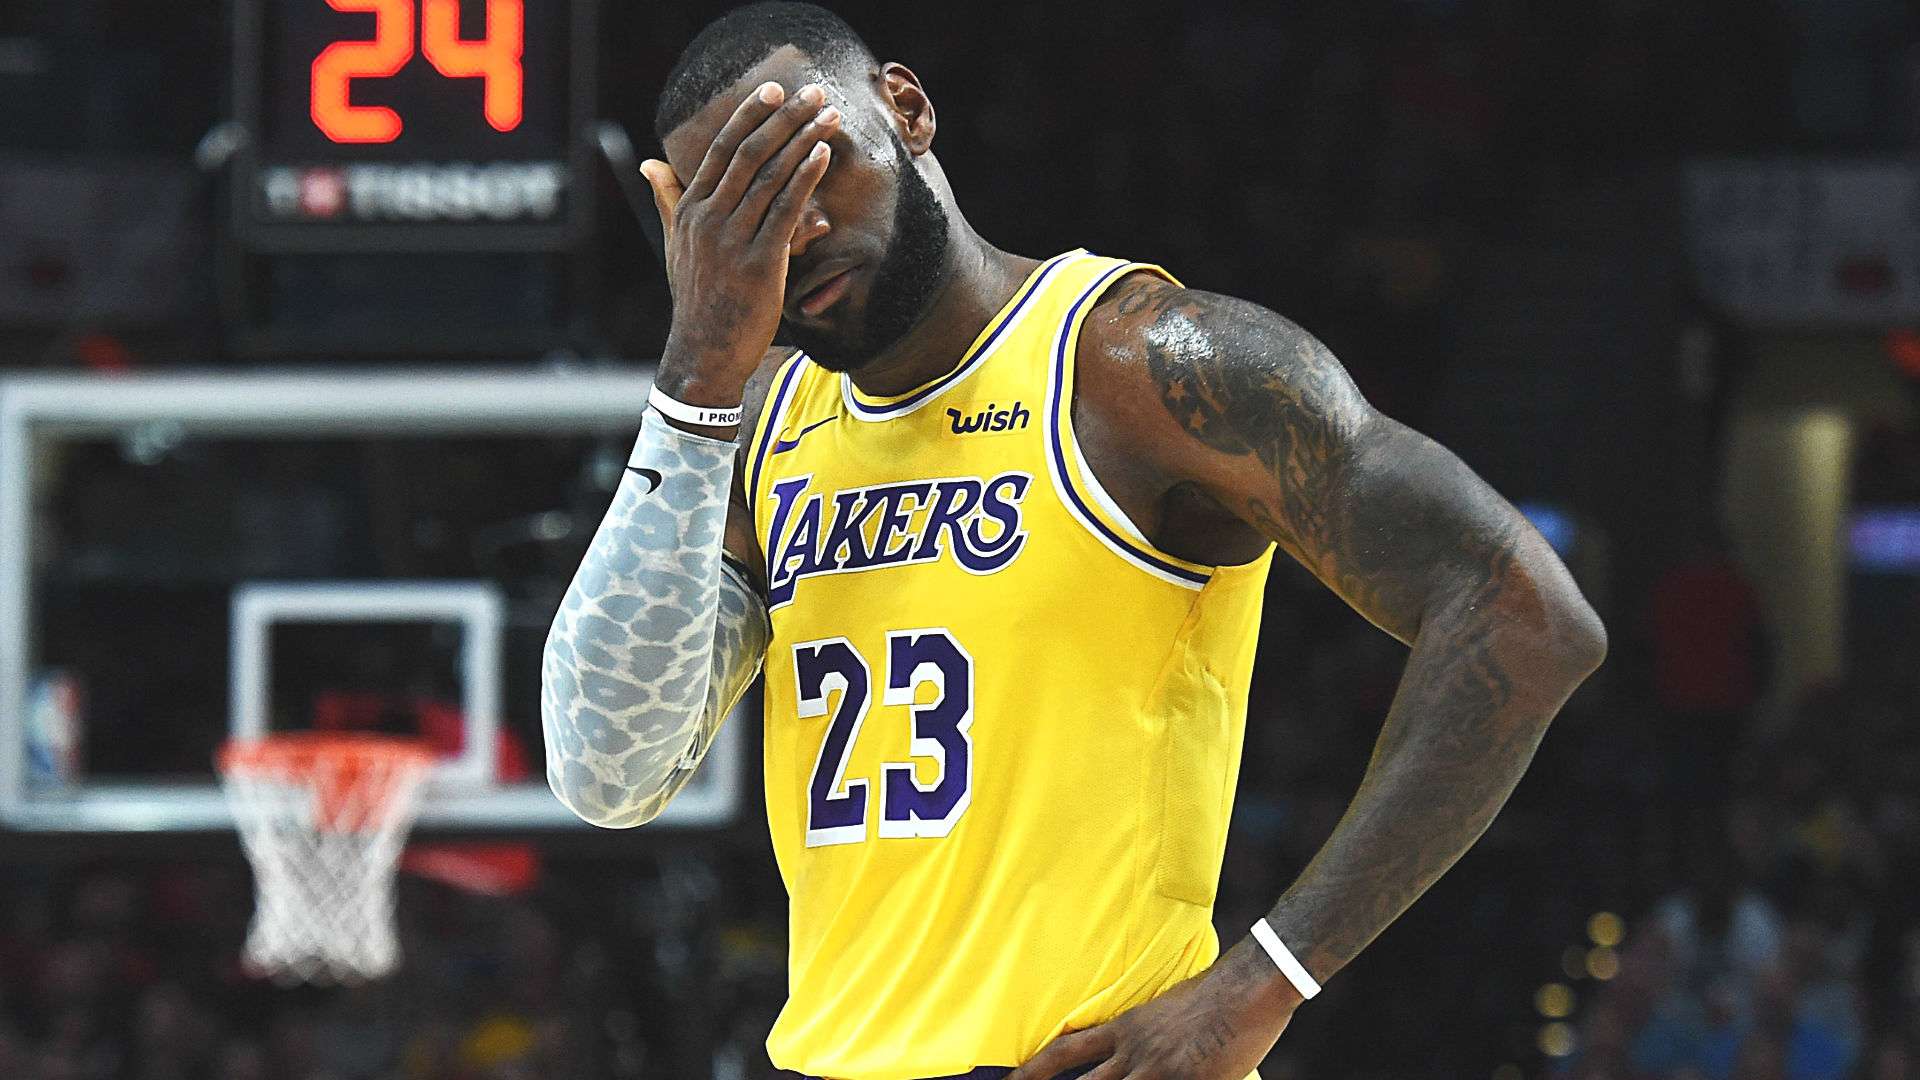 LeBron James' Lakers debut: Stats, highlights from season ...